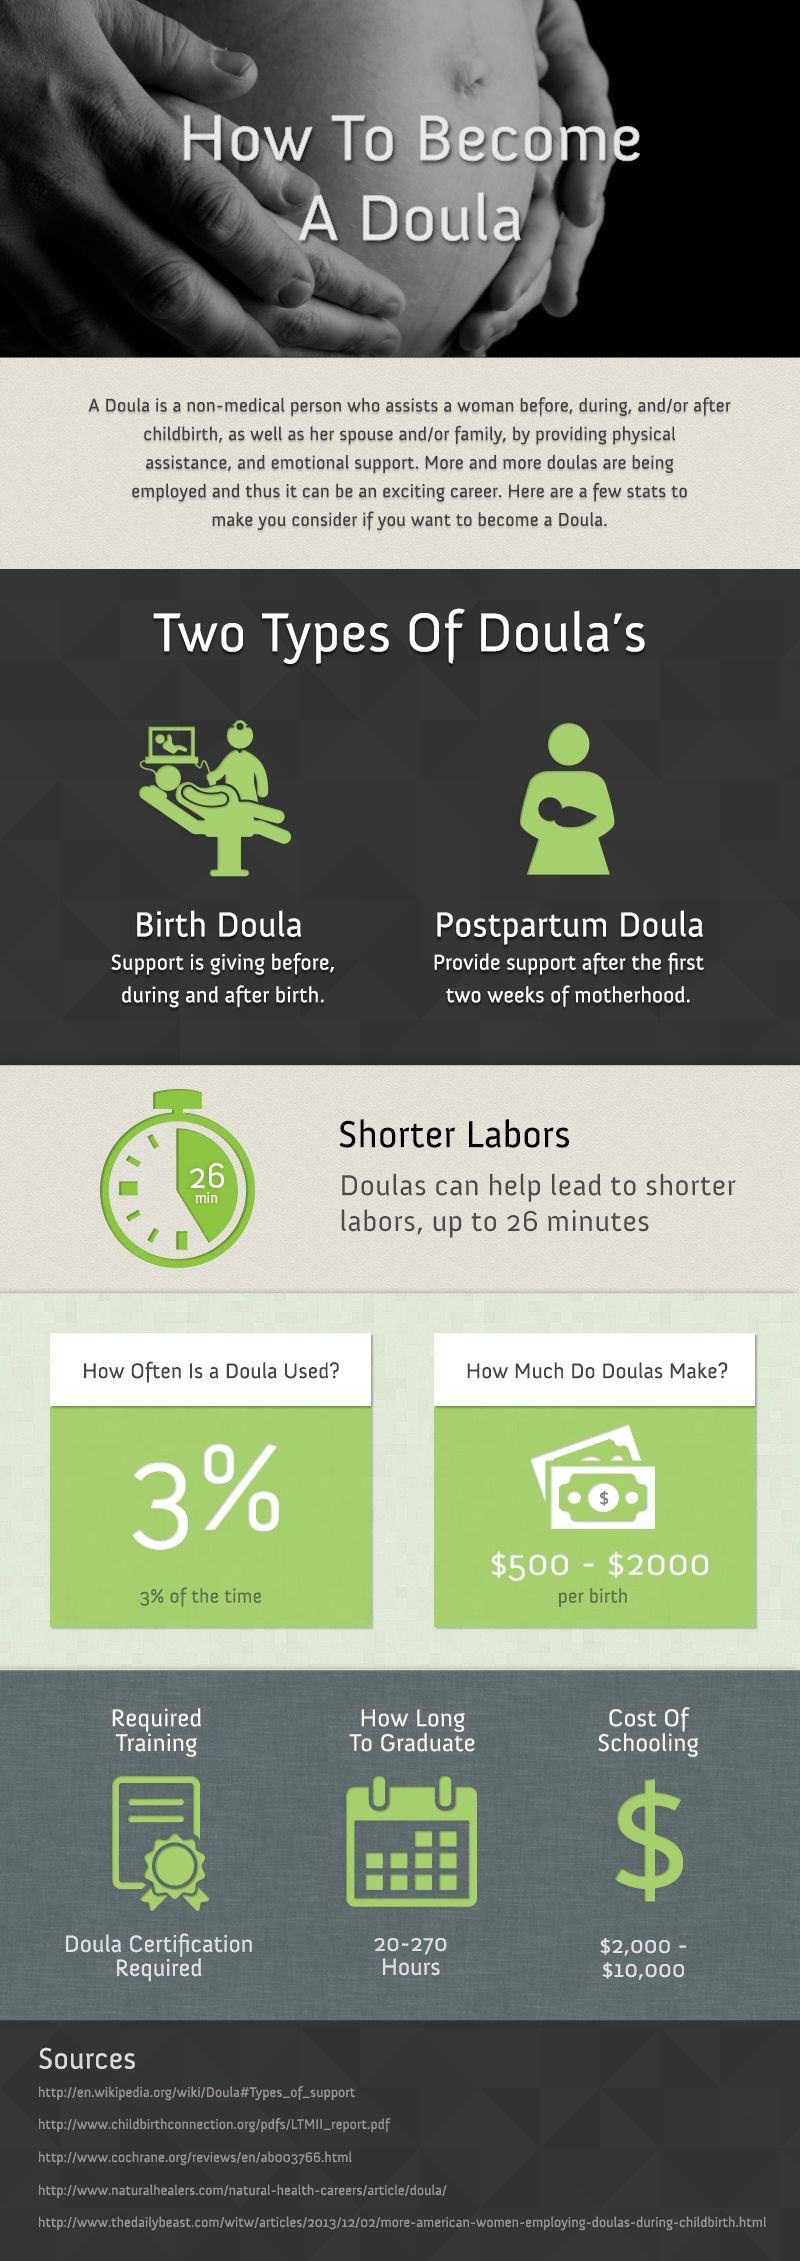 Introducing an Exciting Career Option: How to Become a Doula - Infographic